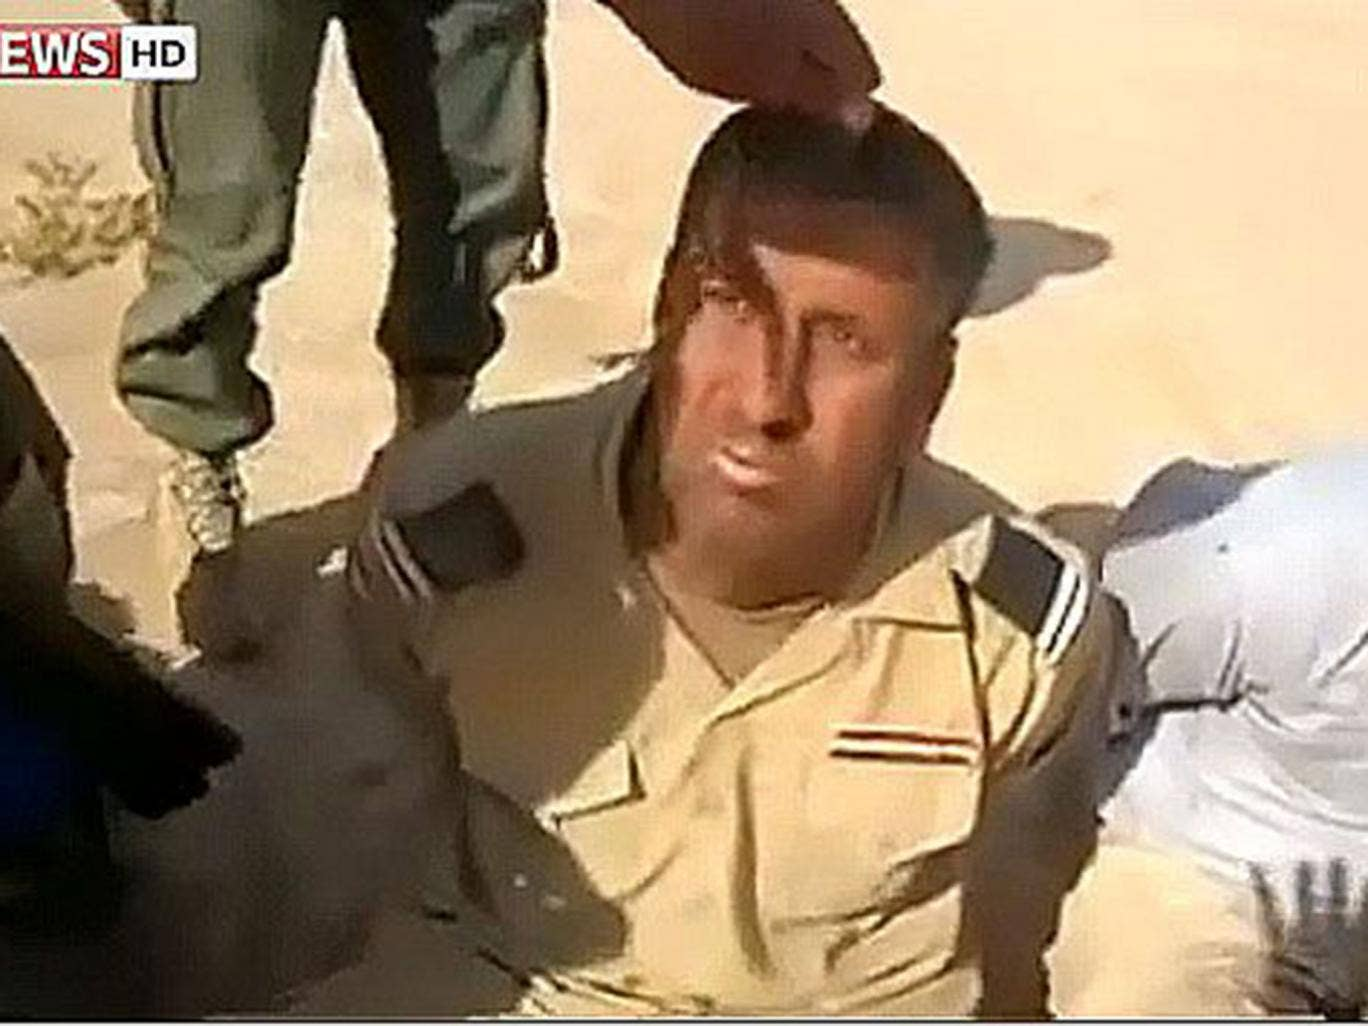 One Iraqi captive, a corporal, is reluctant to say the slogan, and has to be shouted at repeatedly before he obeys